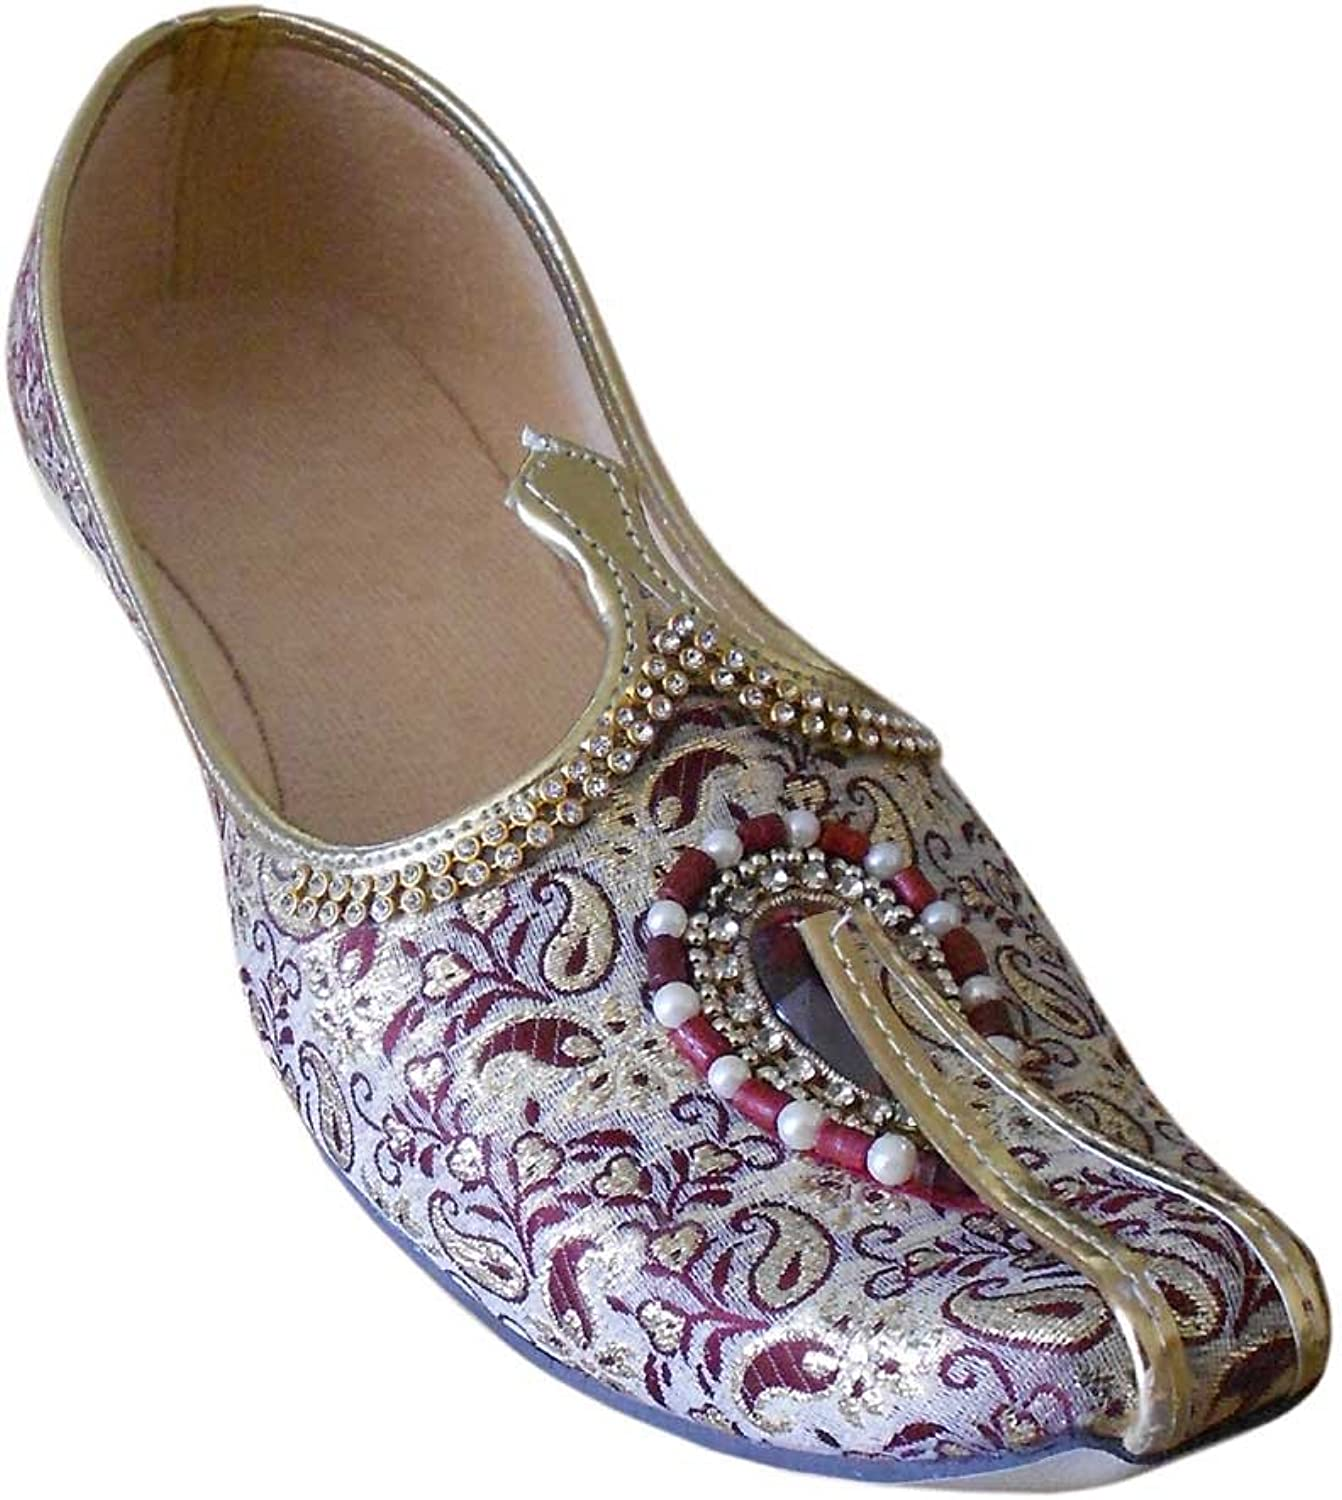 Kalra Creations Men's Traditional Indian Jutti Loafer Mojari Flats